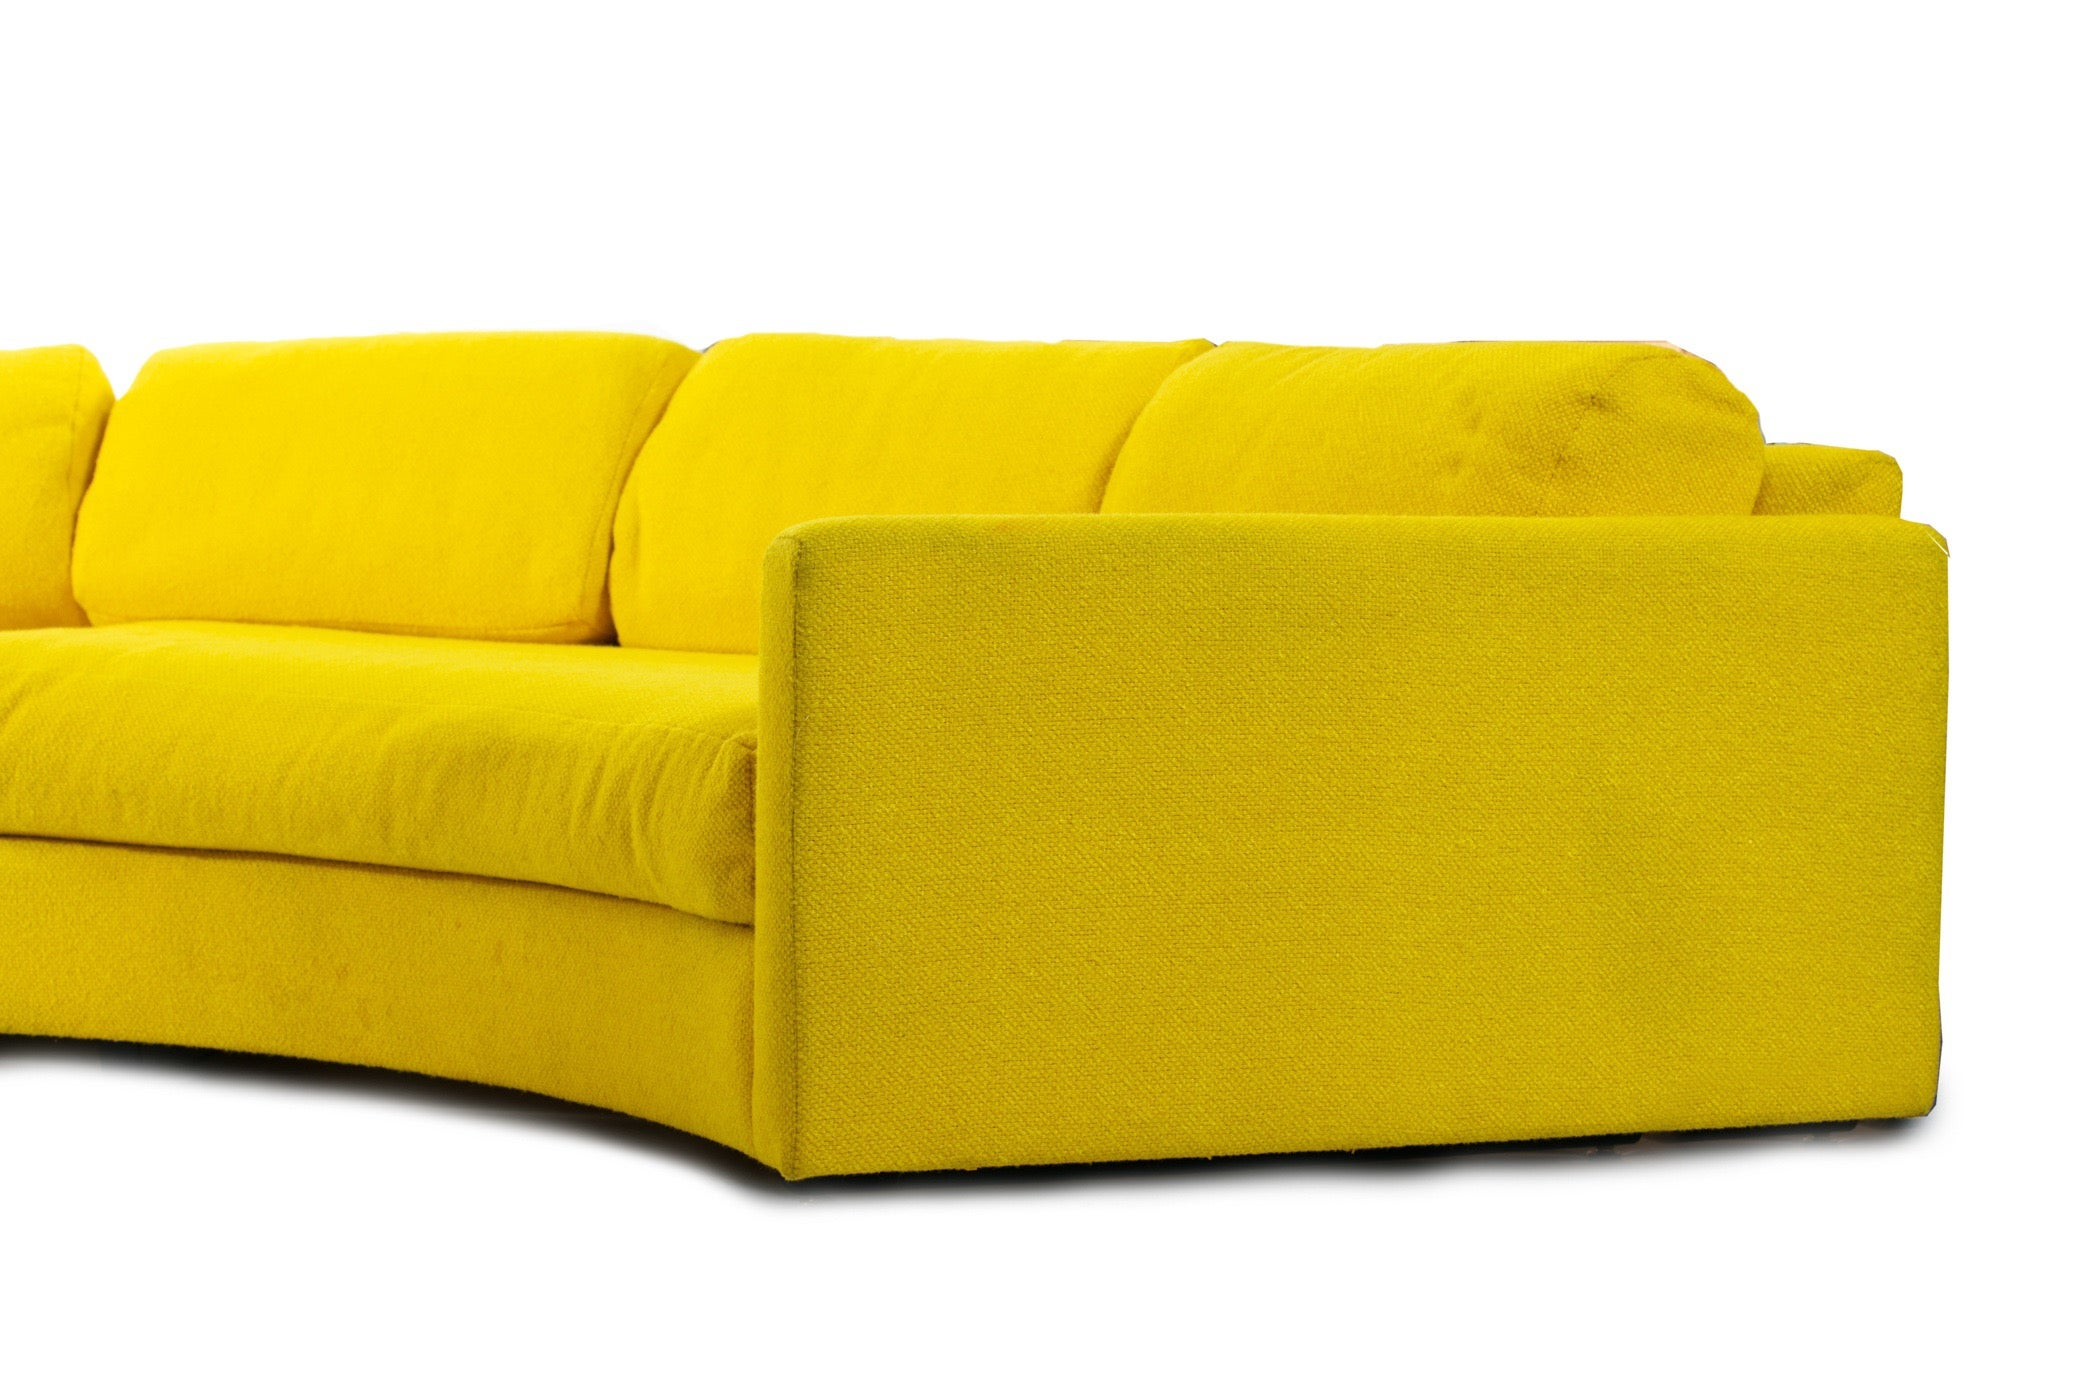 Awesome Adrian Pearsall Yellow Semi Circular Sofa 3 Piece Sectional Onthecornerstone Fun Painted Chair Ideas Images Onthecornerstoneorg